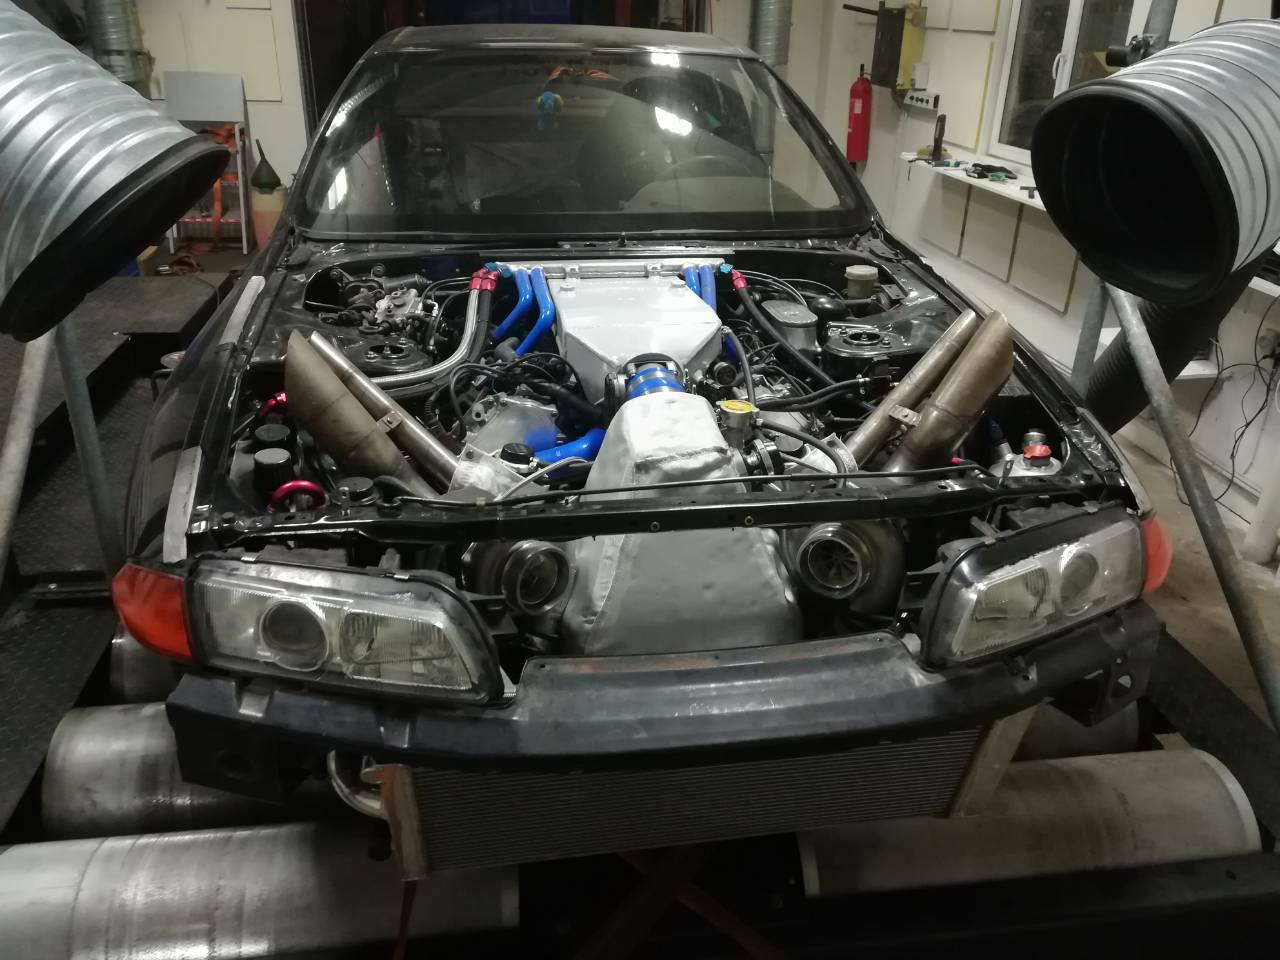 Nissan R32 GTR with a 1700 hp Twin-Turbo VK56 V8 – Engine Swap Depot